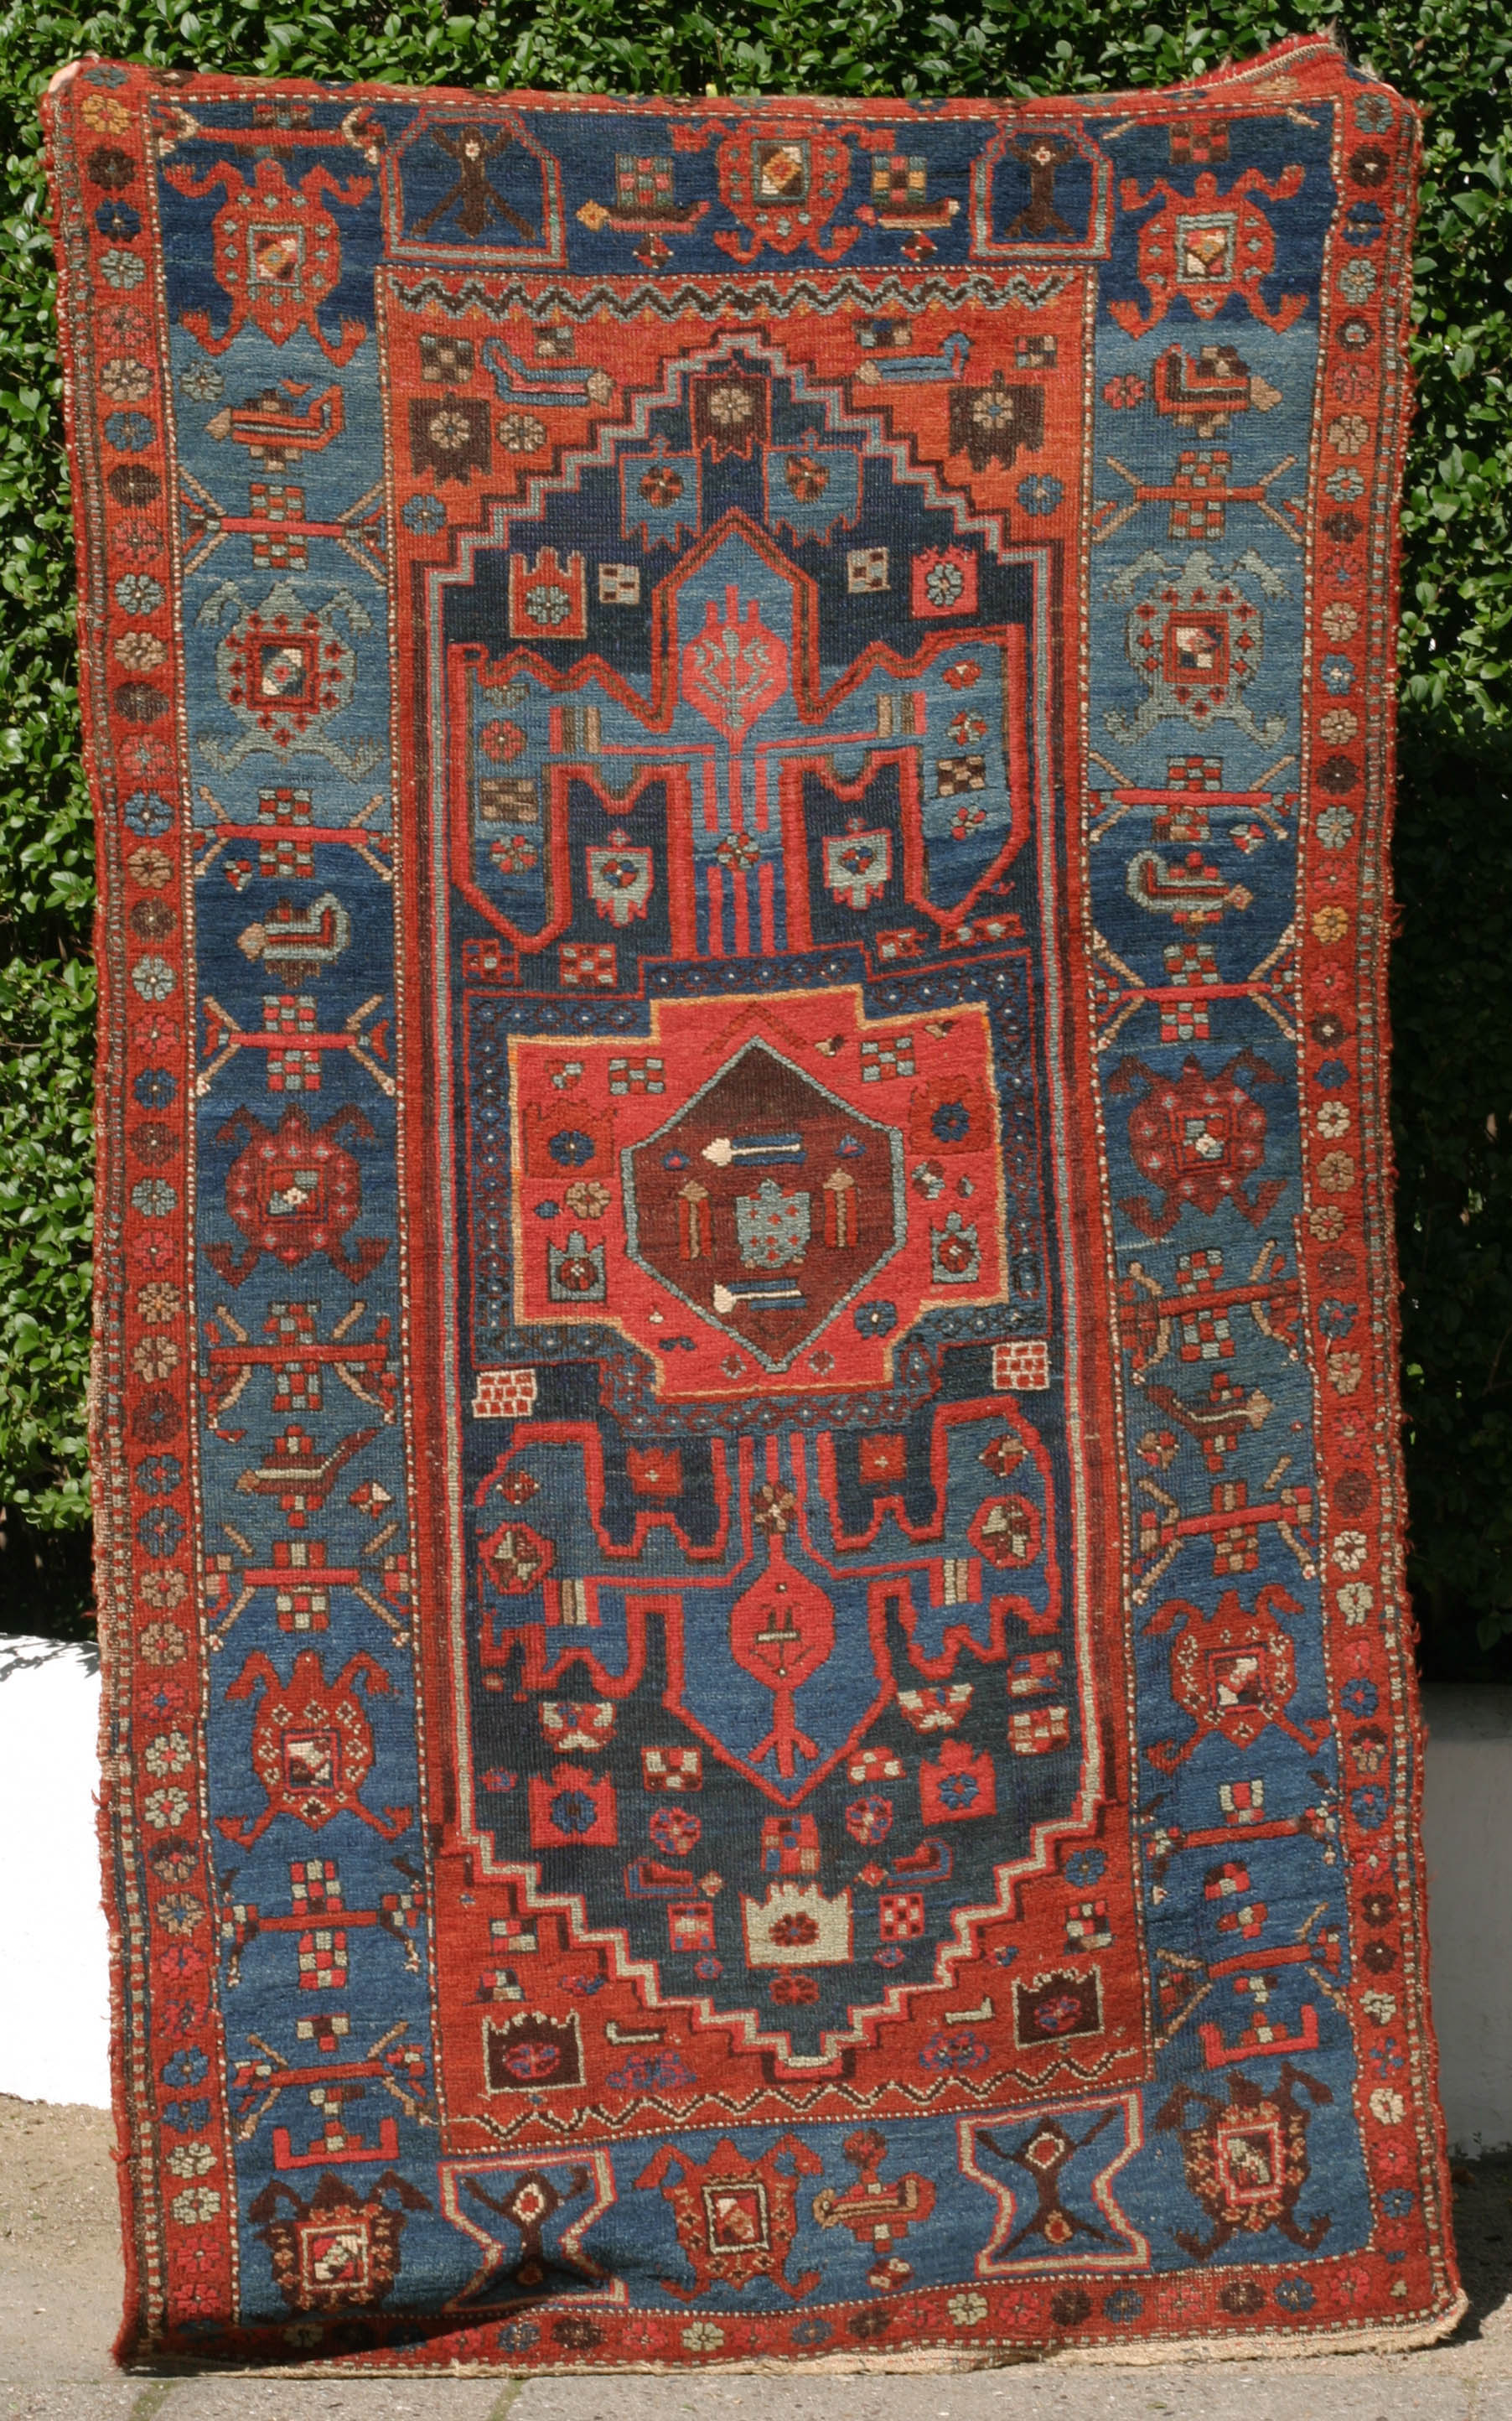 Kolyai Qulya I Kurdish Rug With Anchor Design And Turtle